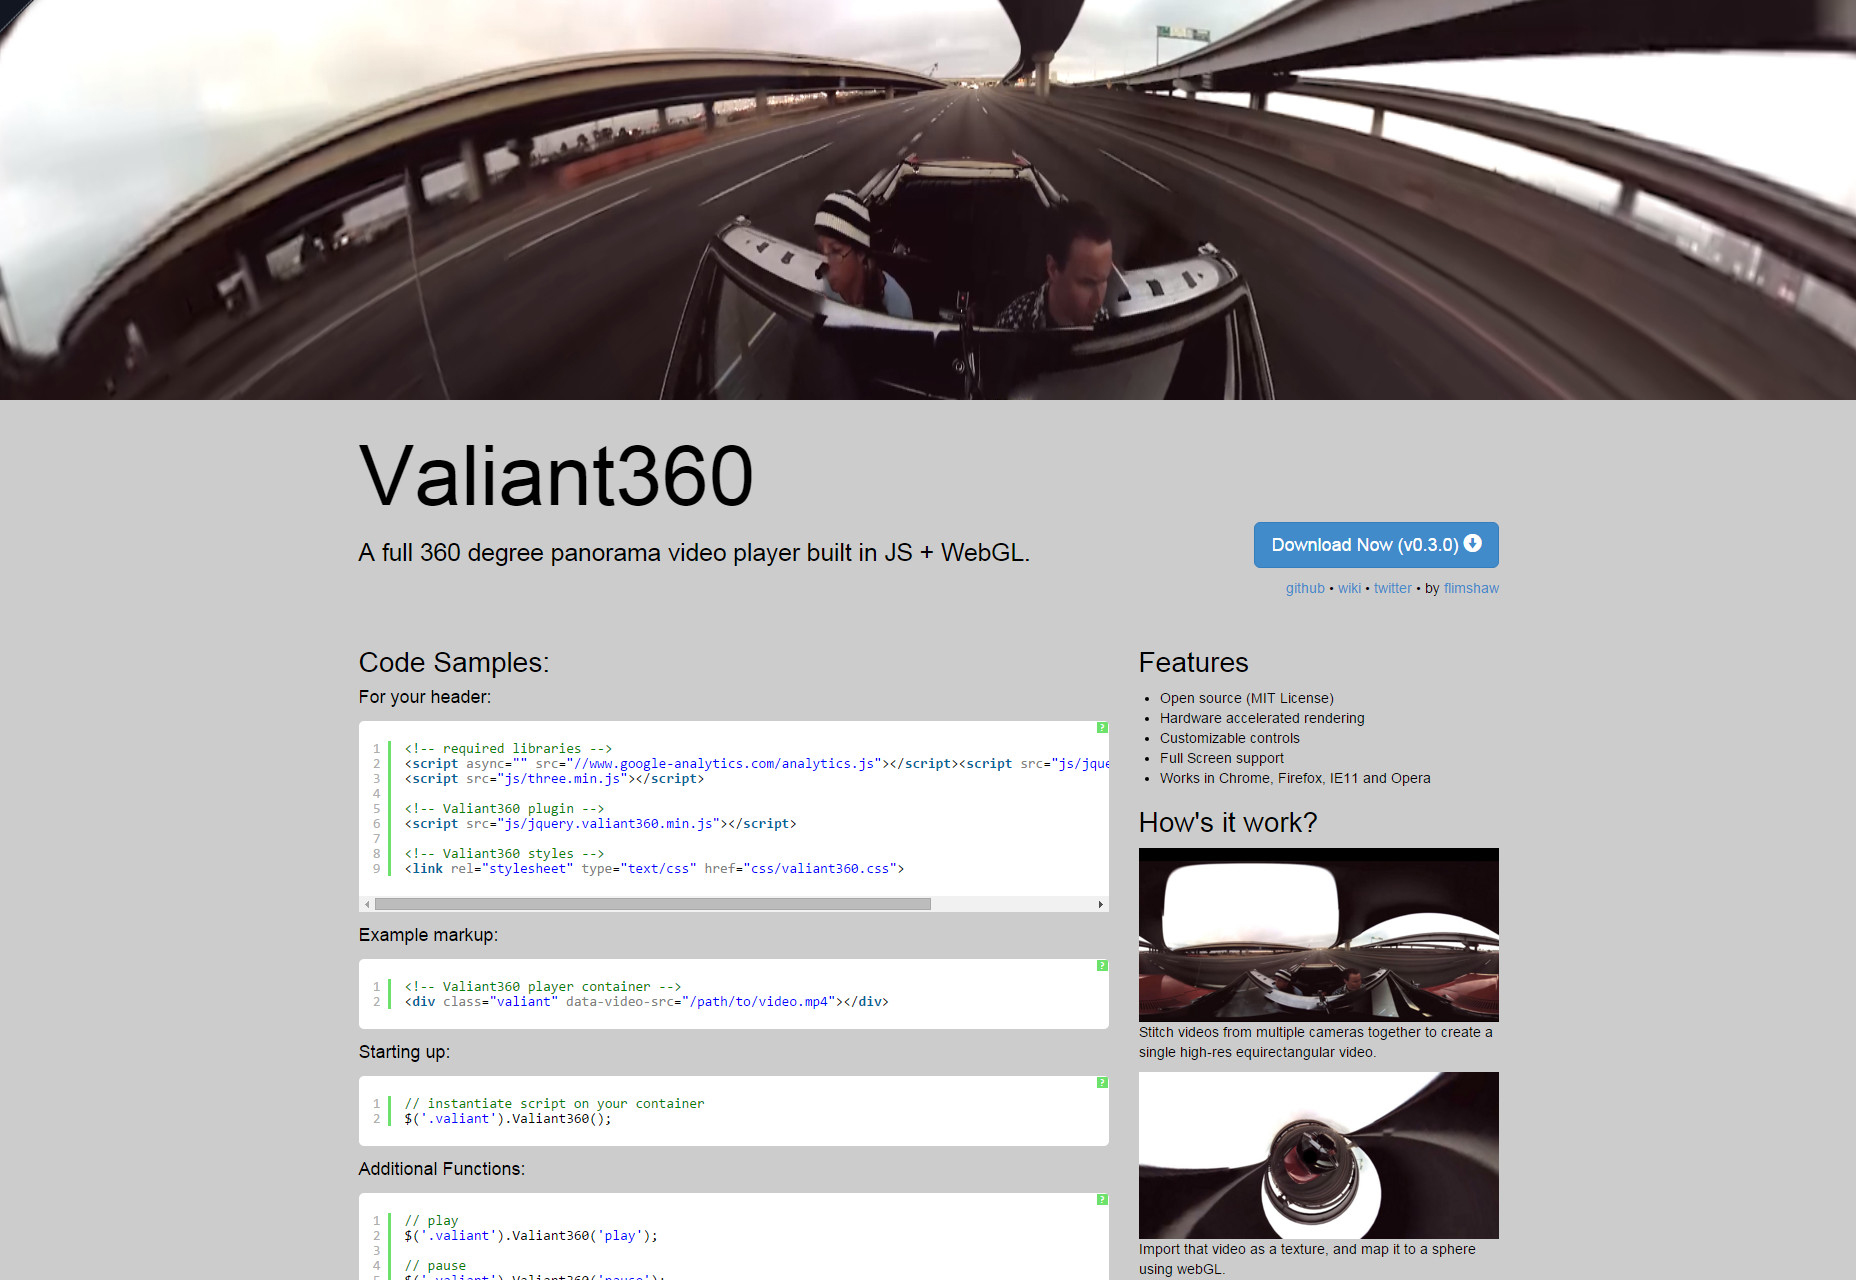 Valiant360: Panorama Video Player